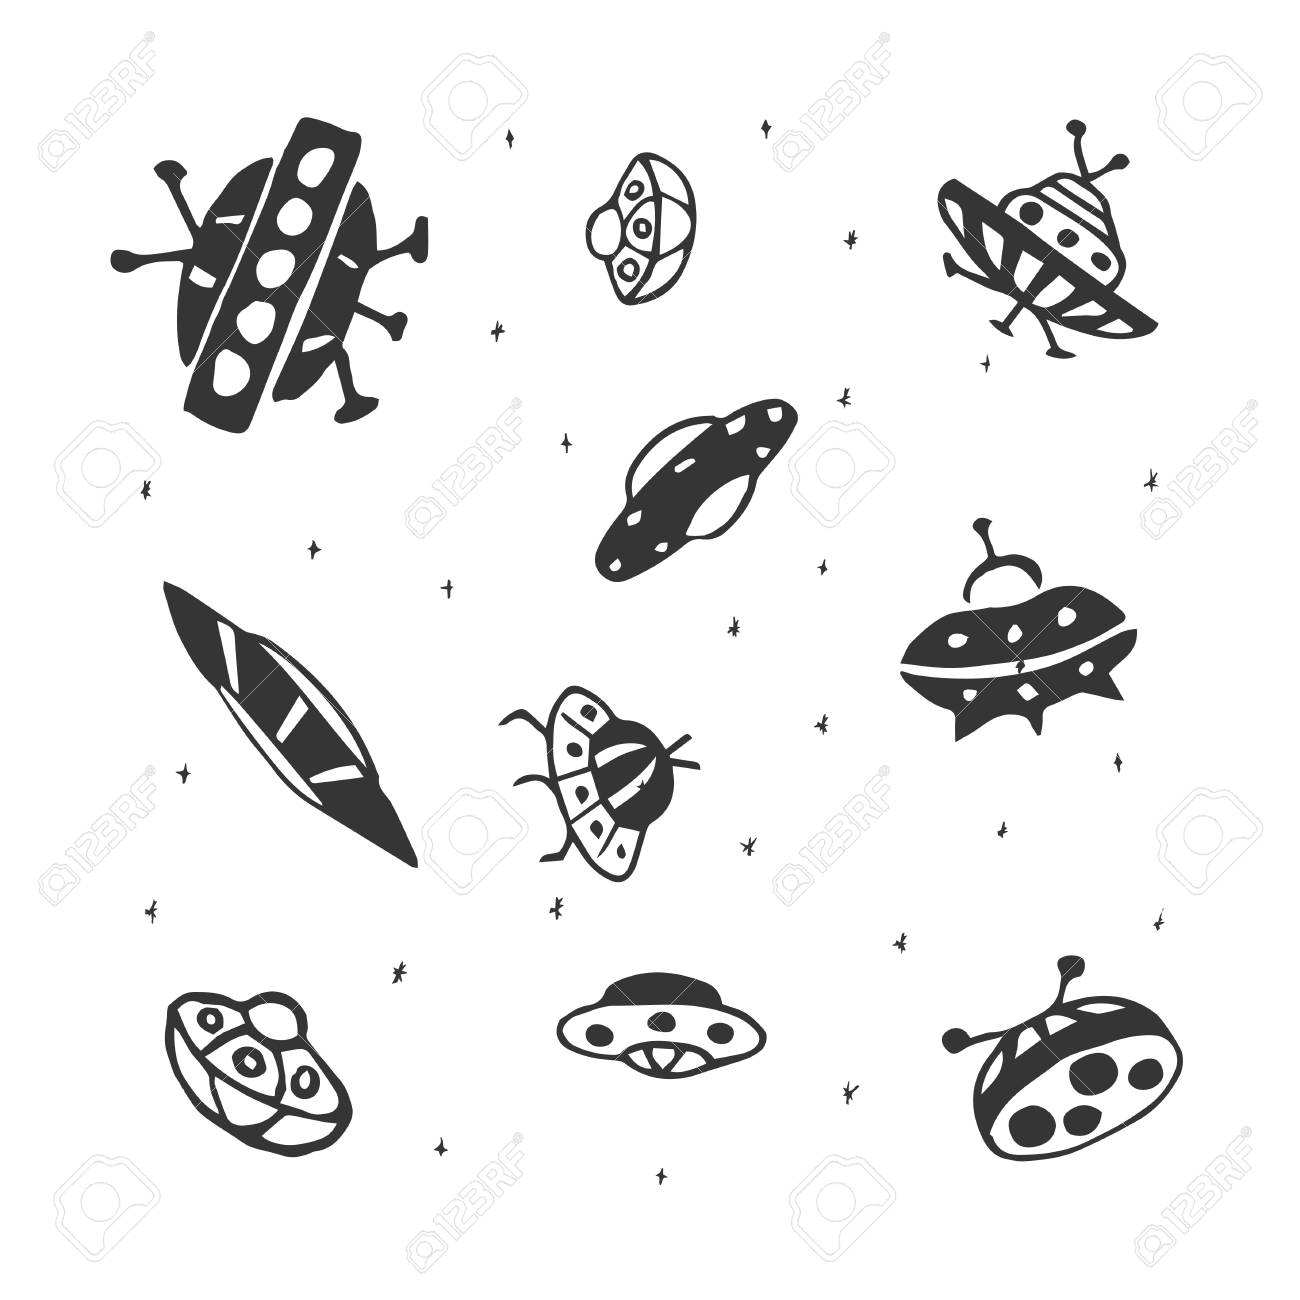 Vector Set Of Hand Drawing Ufo Flying Saucer Royalty Free Cliparts Vectors And Stock Illustration Image 98545693